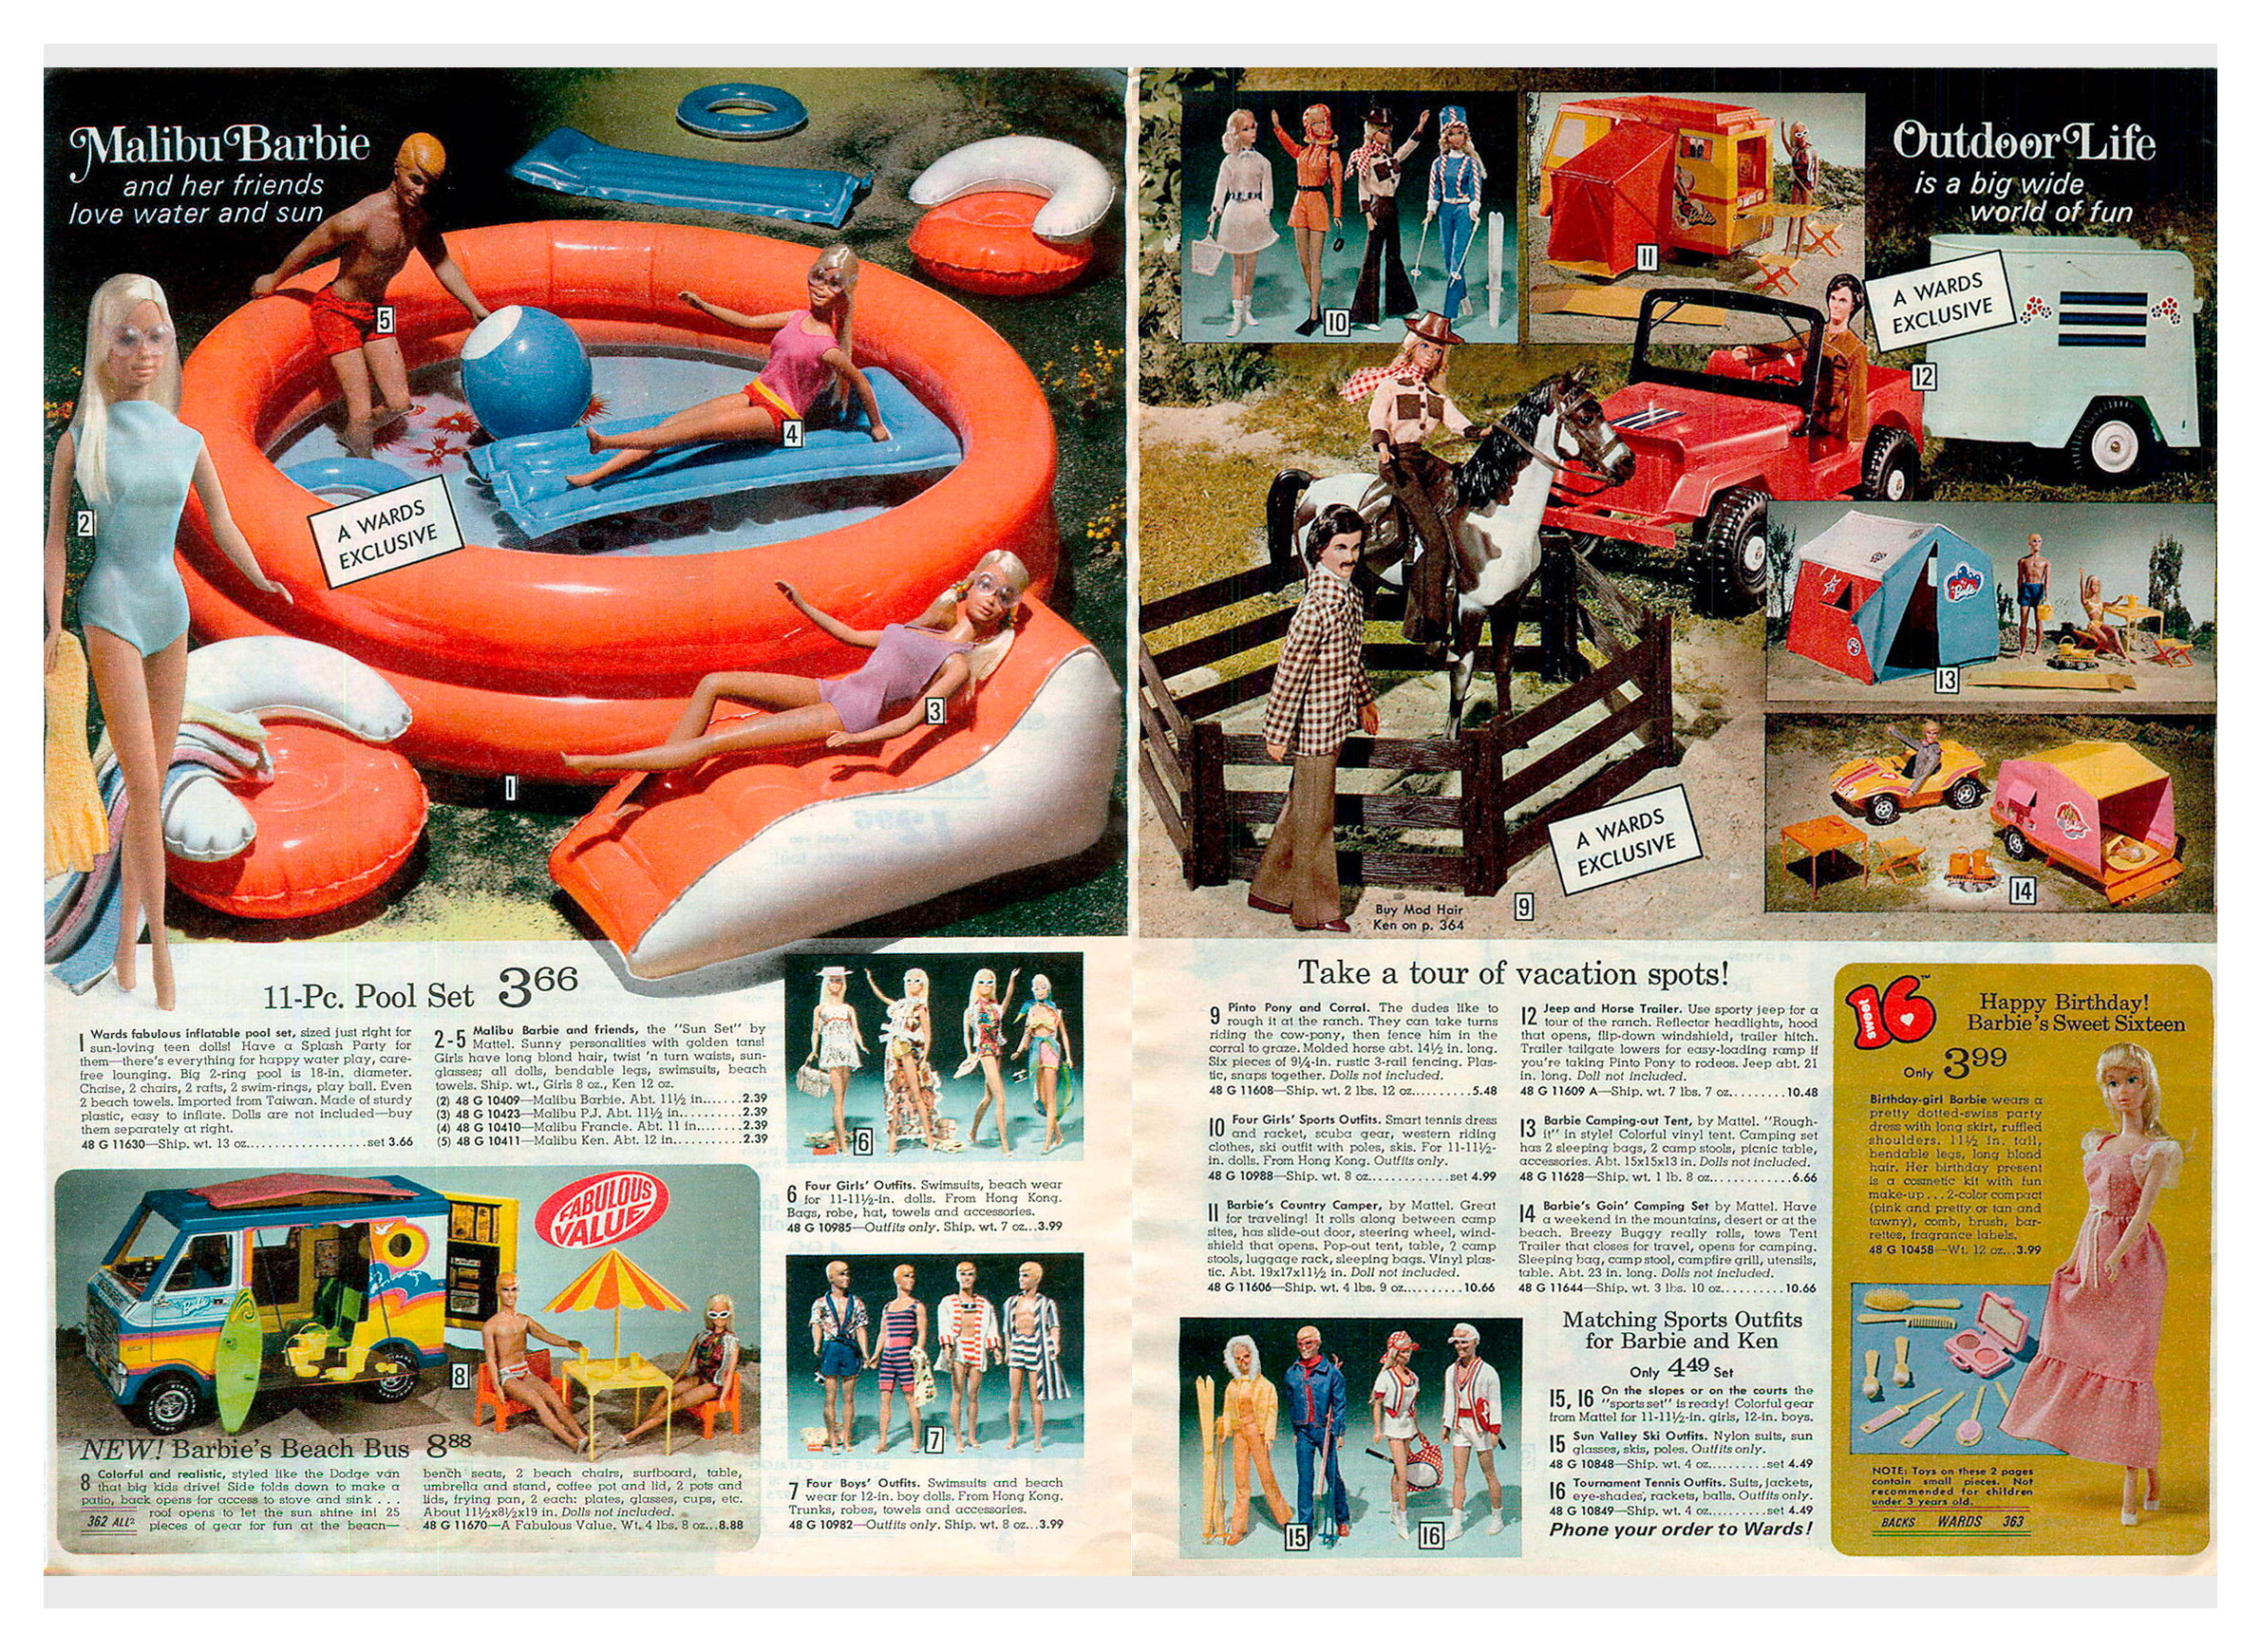 From 1974 Montgomery Ward Christmas catalogue